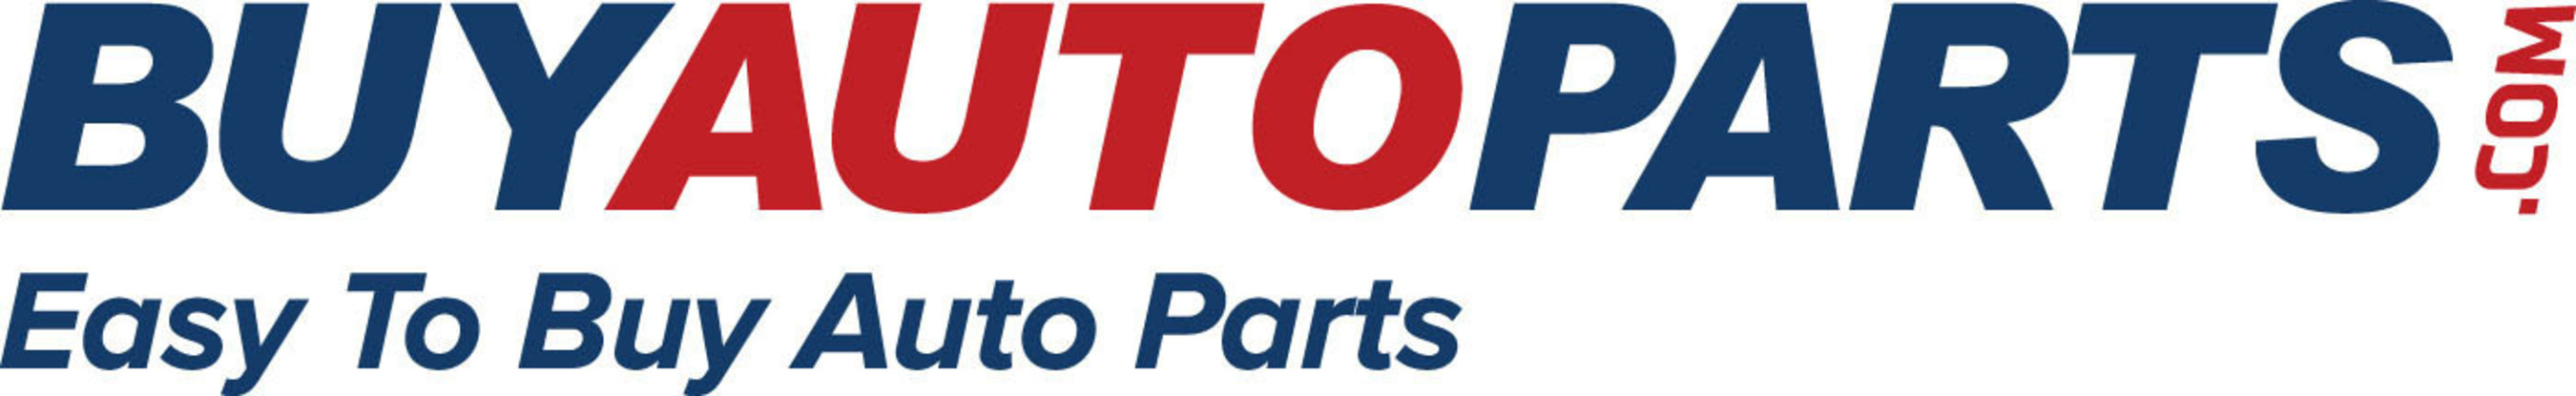 BuyAutoParts.com Celebrates One Millionth Part Order